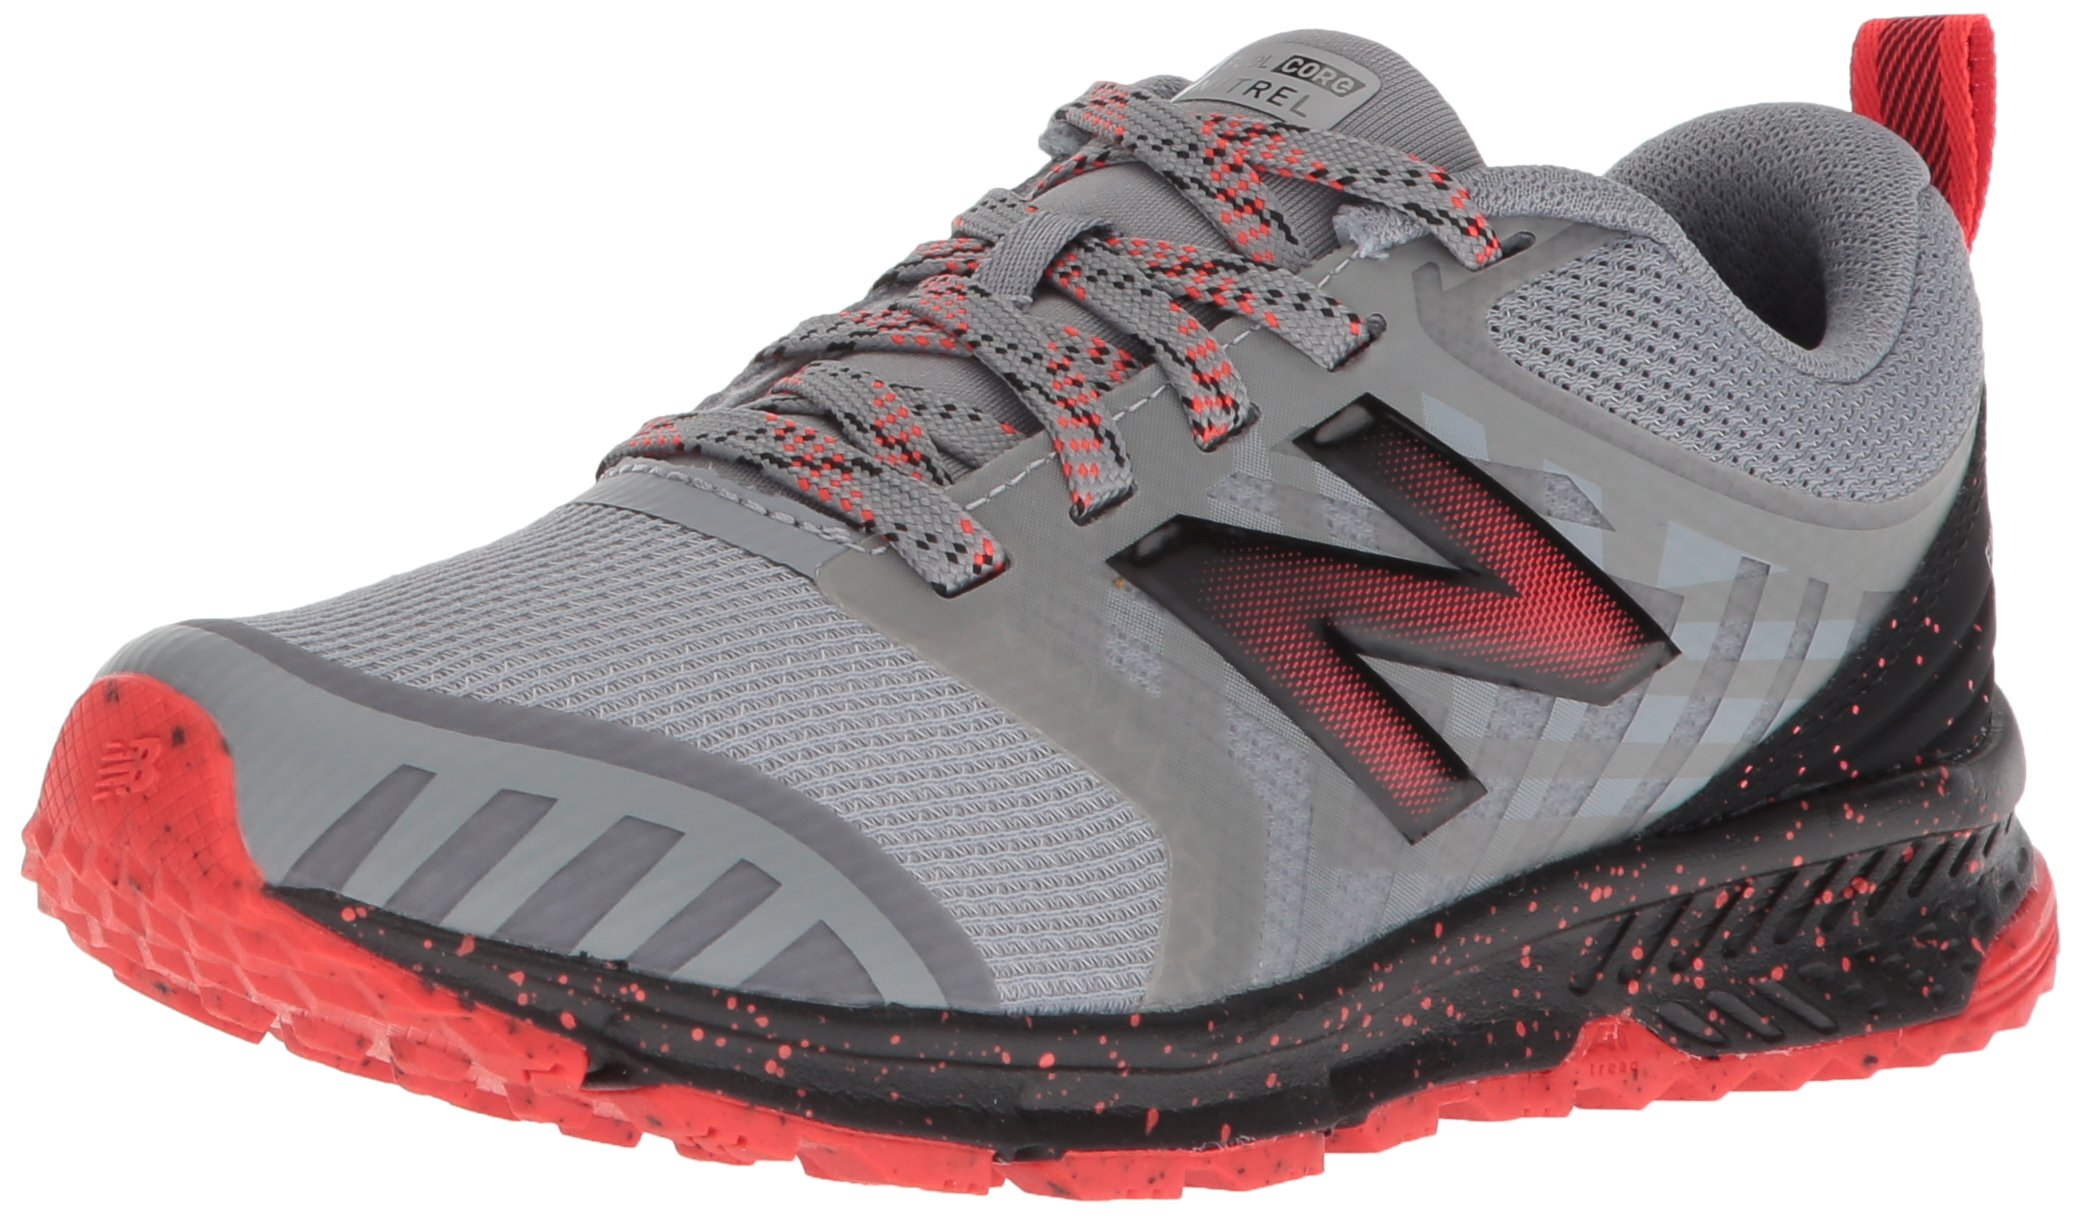 New Balance Boys' Nitrel v3 Trail Running Shoe, Steel/Flame, 13 W US Little Kid